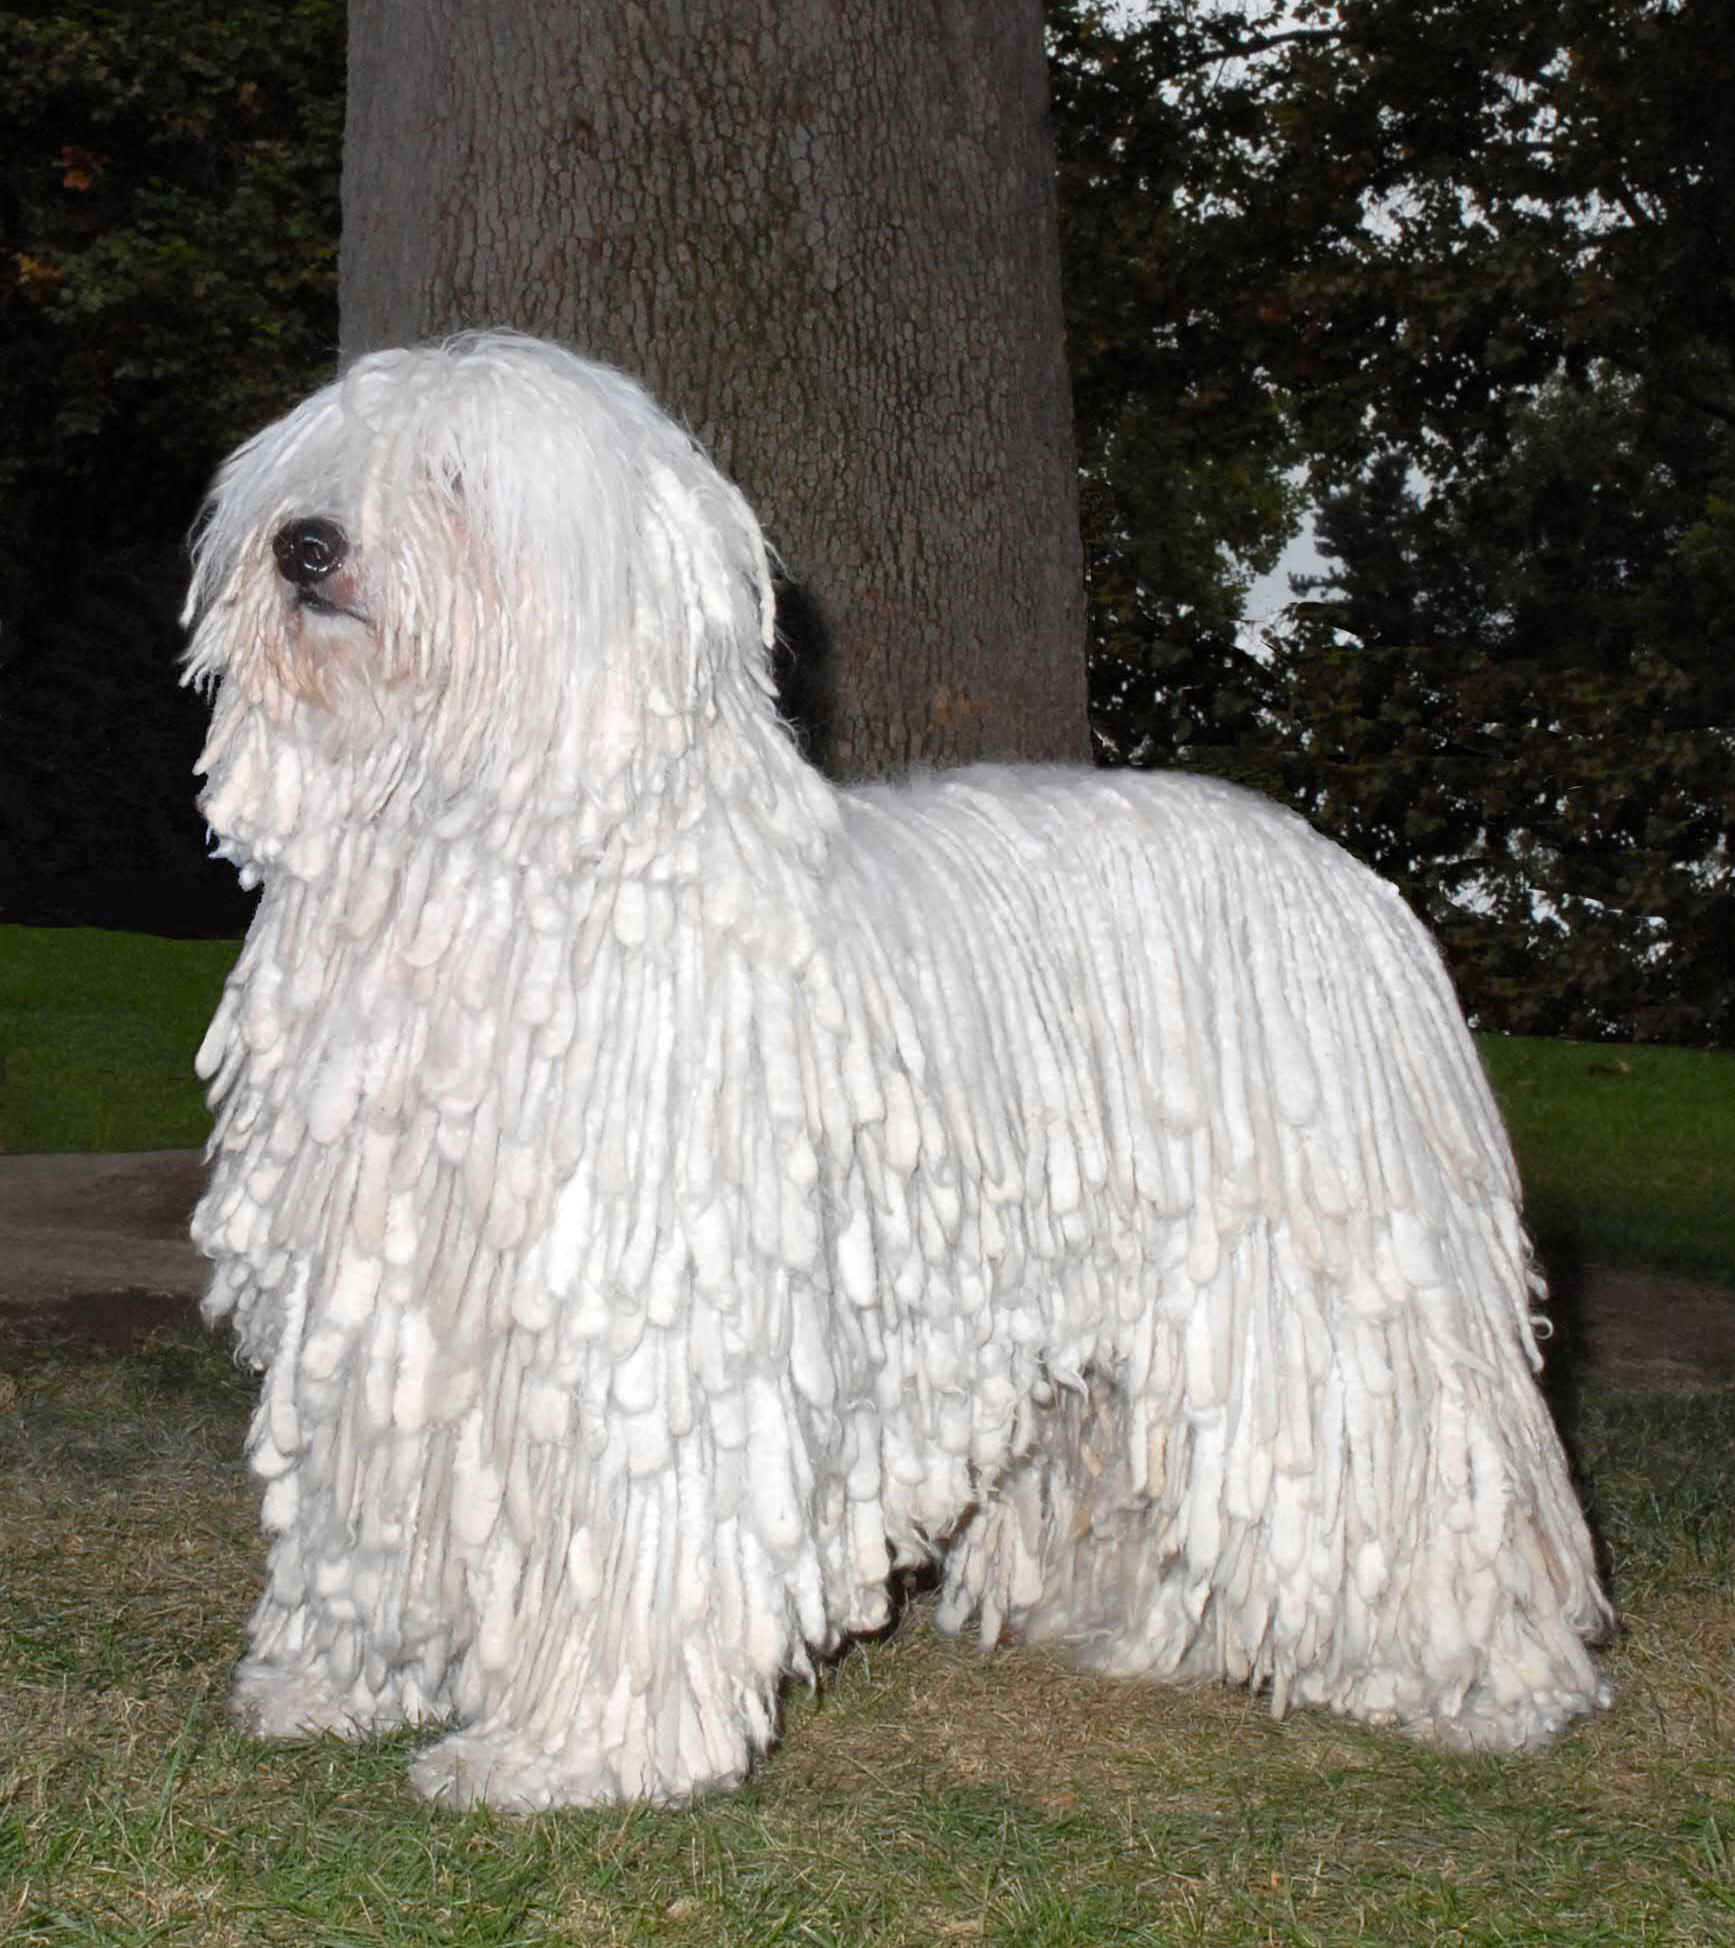 White Komondor dog near the tree wallpaper